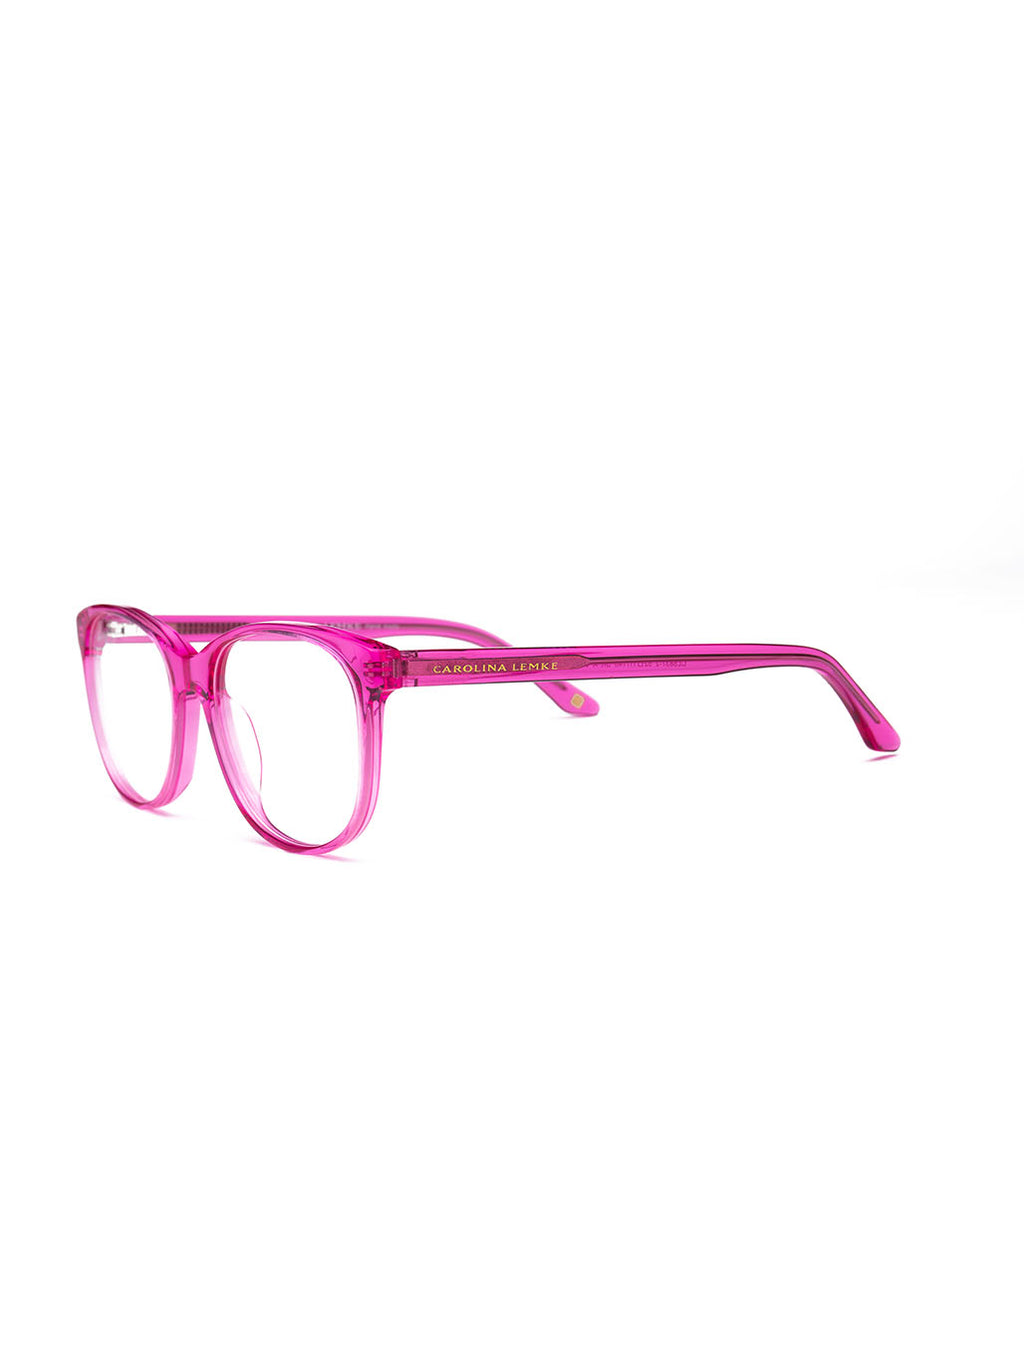 Nuki - Clear Pink - Image 2